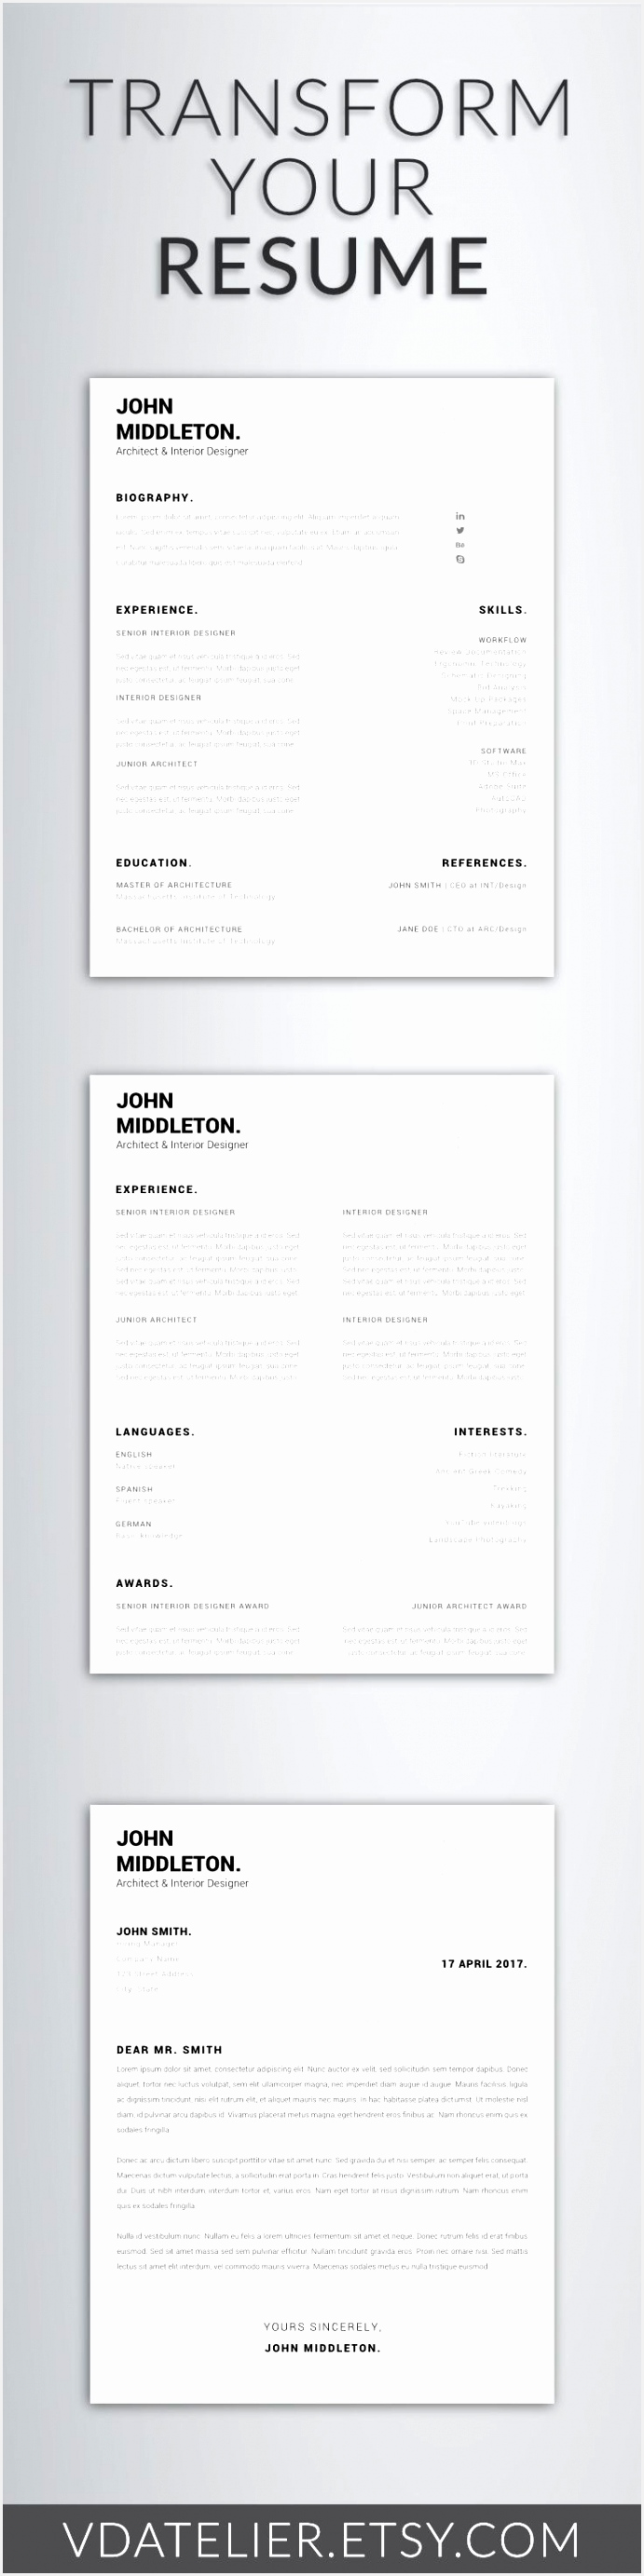 Head Teacher Resume Ucq3n Inspirational Modern Resume Template New Resume Template Cv Template Cover Letter2766691